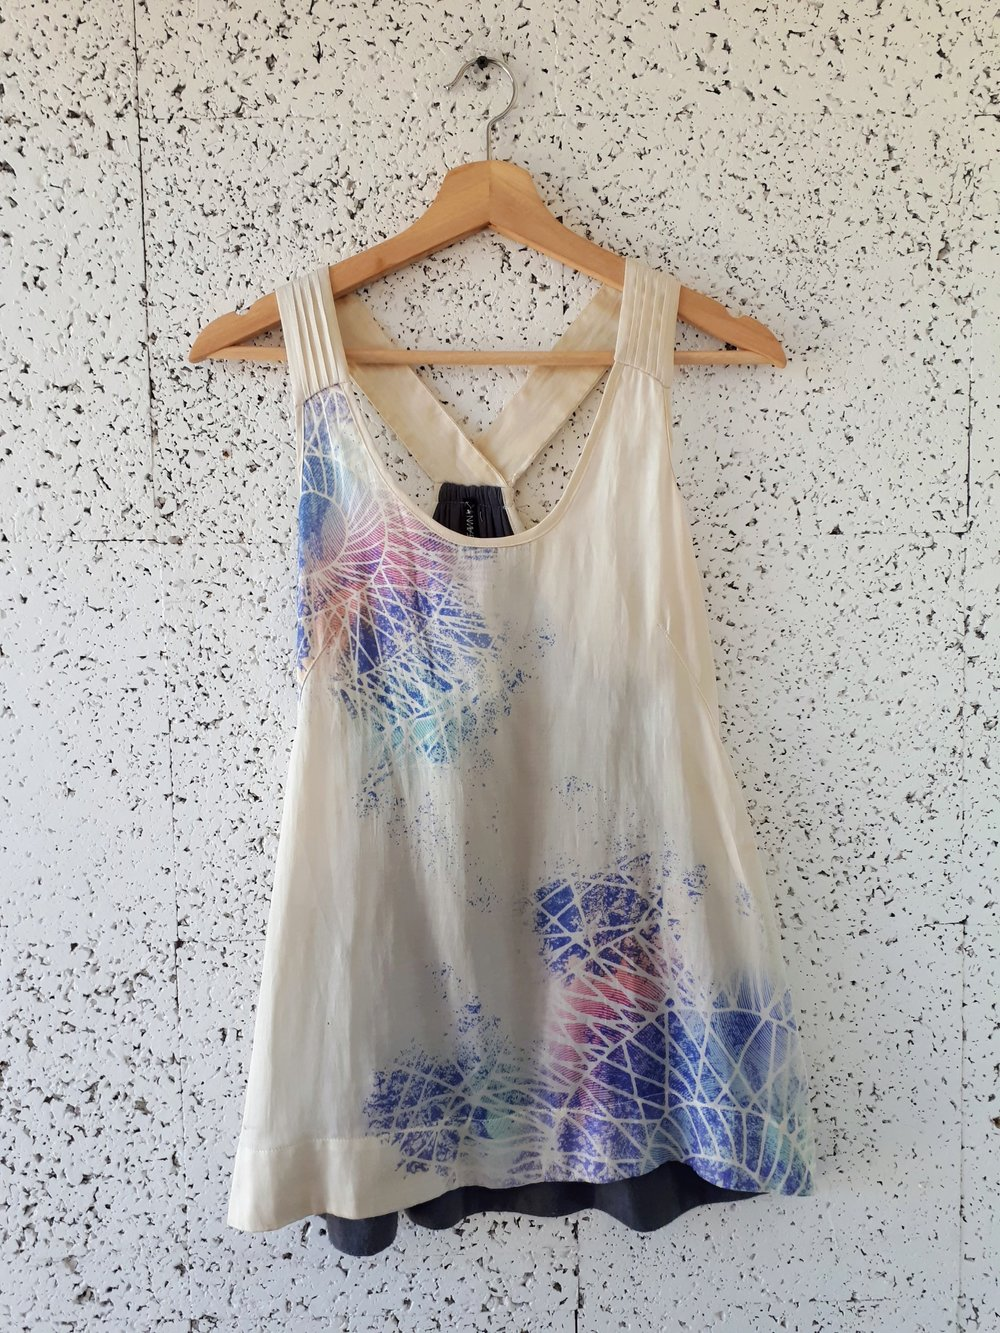 Gentle Fawn top; Size L, $20